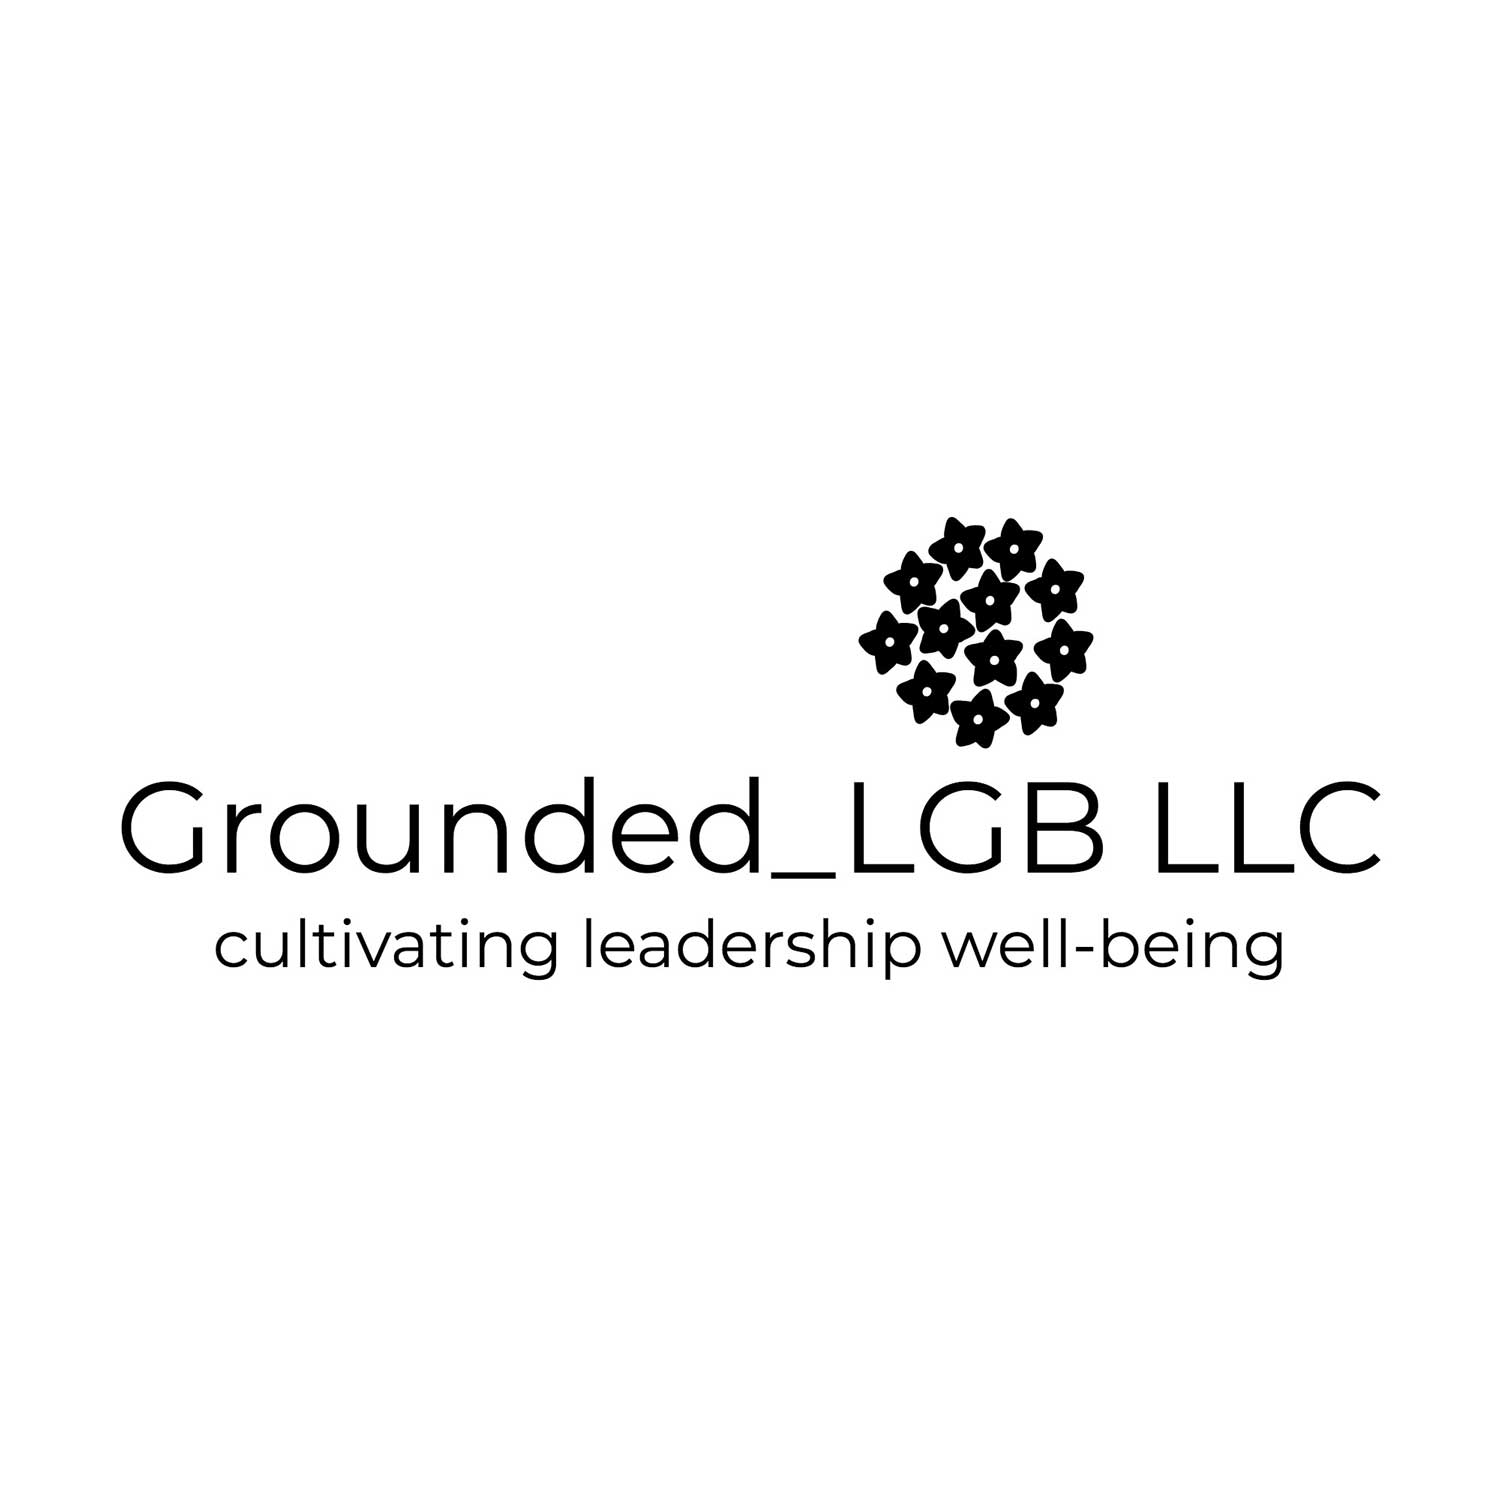 Grounded LGB LLC